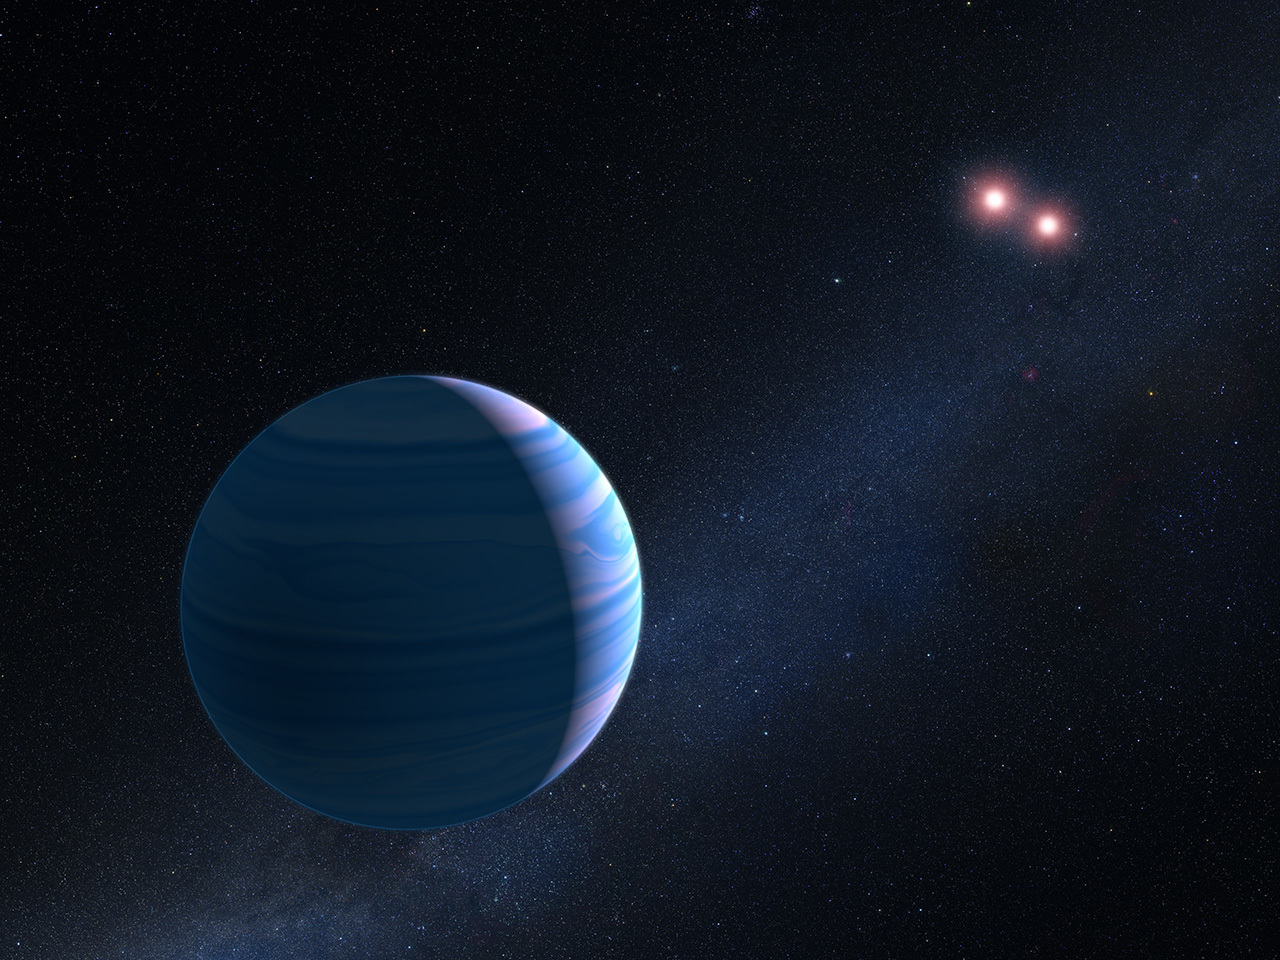 hubble pictures of our solar system - photo #34